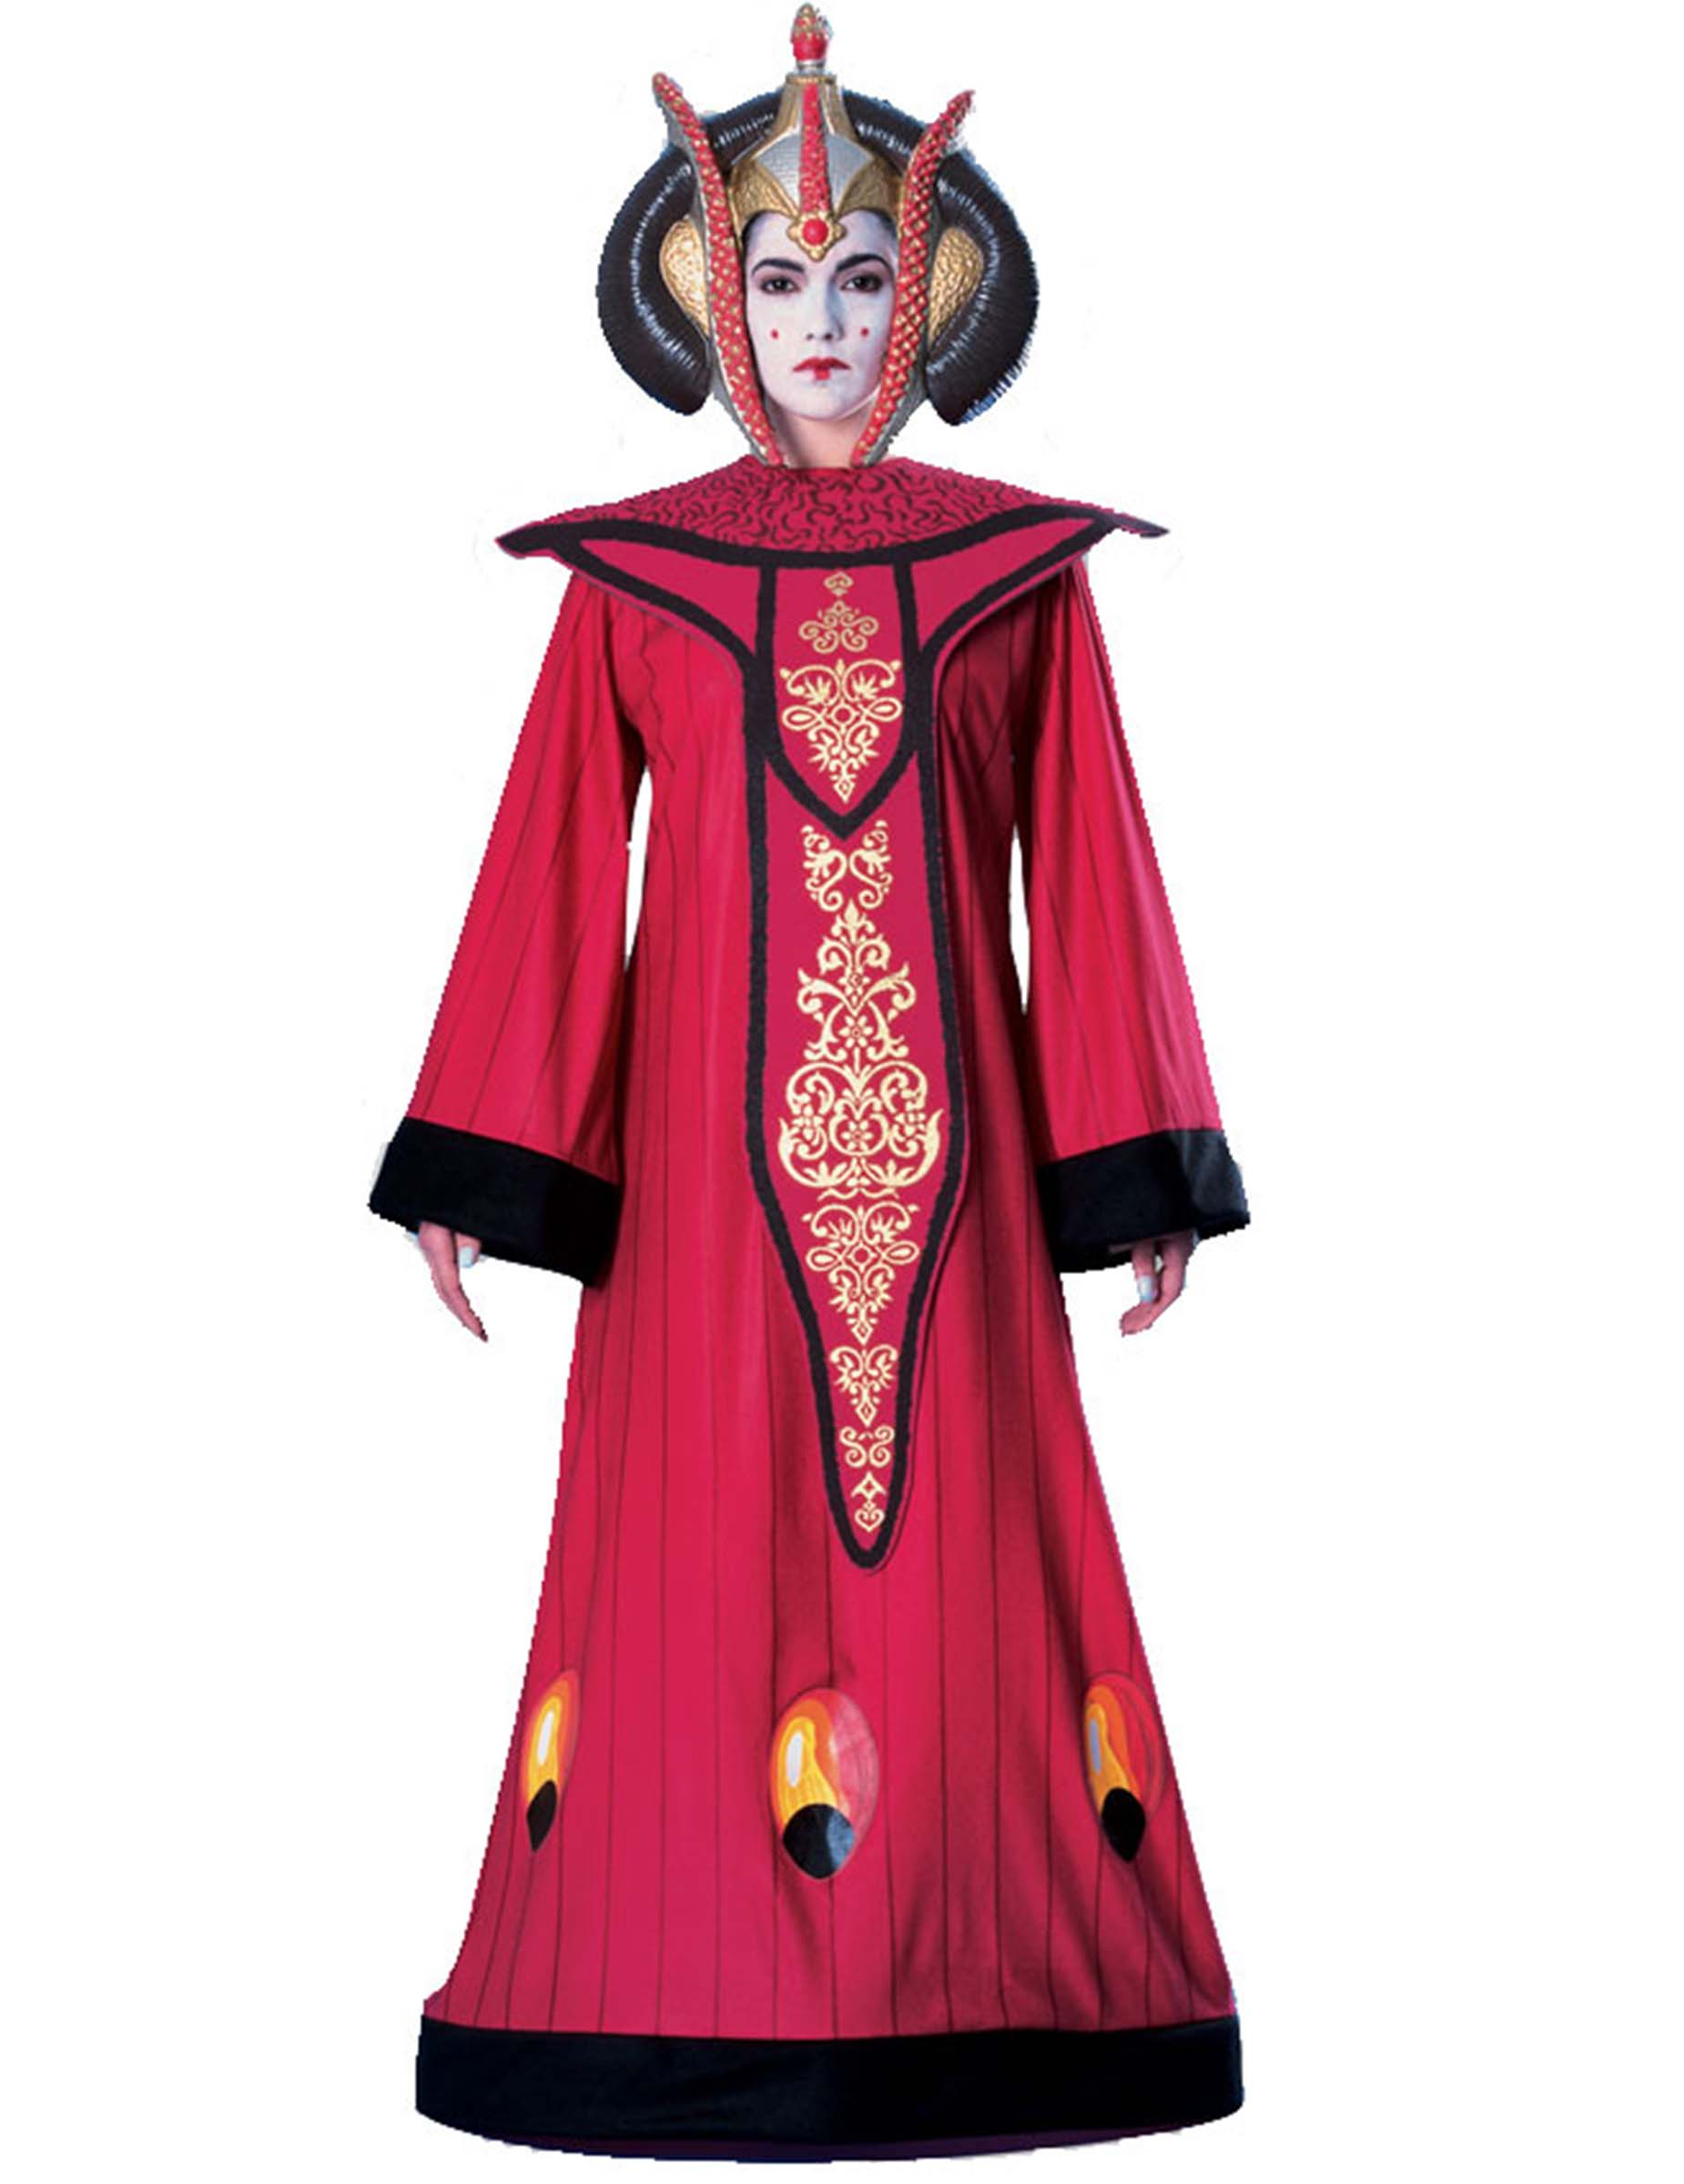 d guisement luxe reine amidala star wars femme deguise toi achat de d guisements adultes. Black Bedroom Furniture Sets. Home Design Ideas